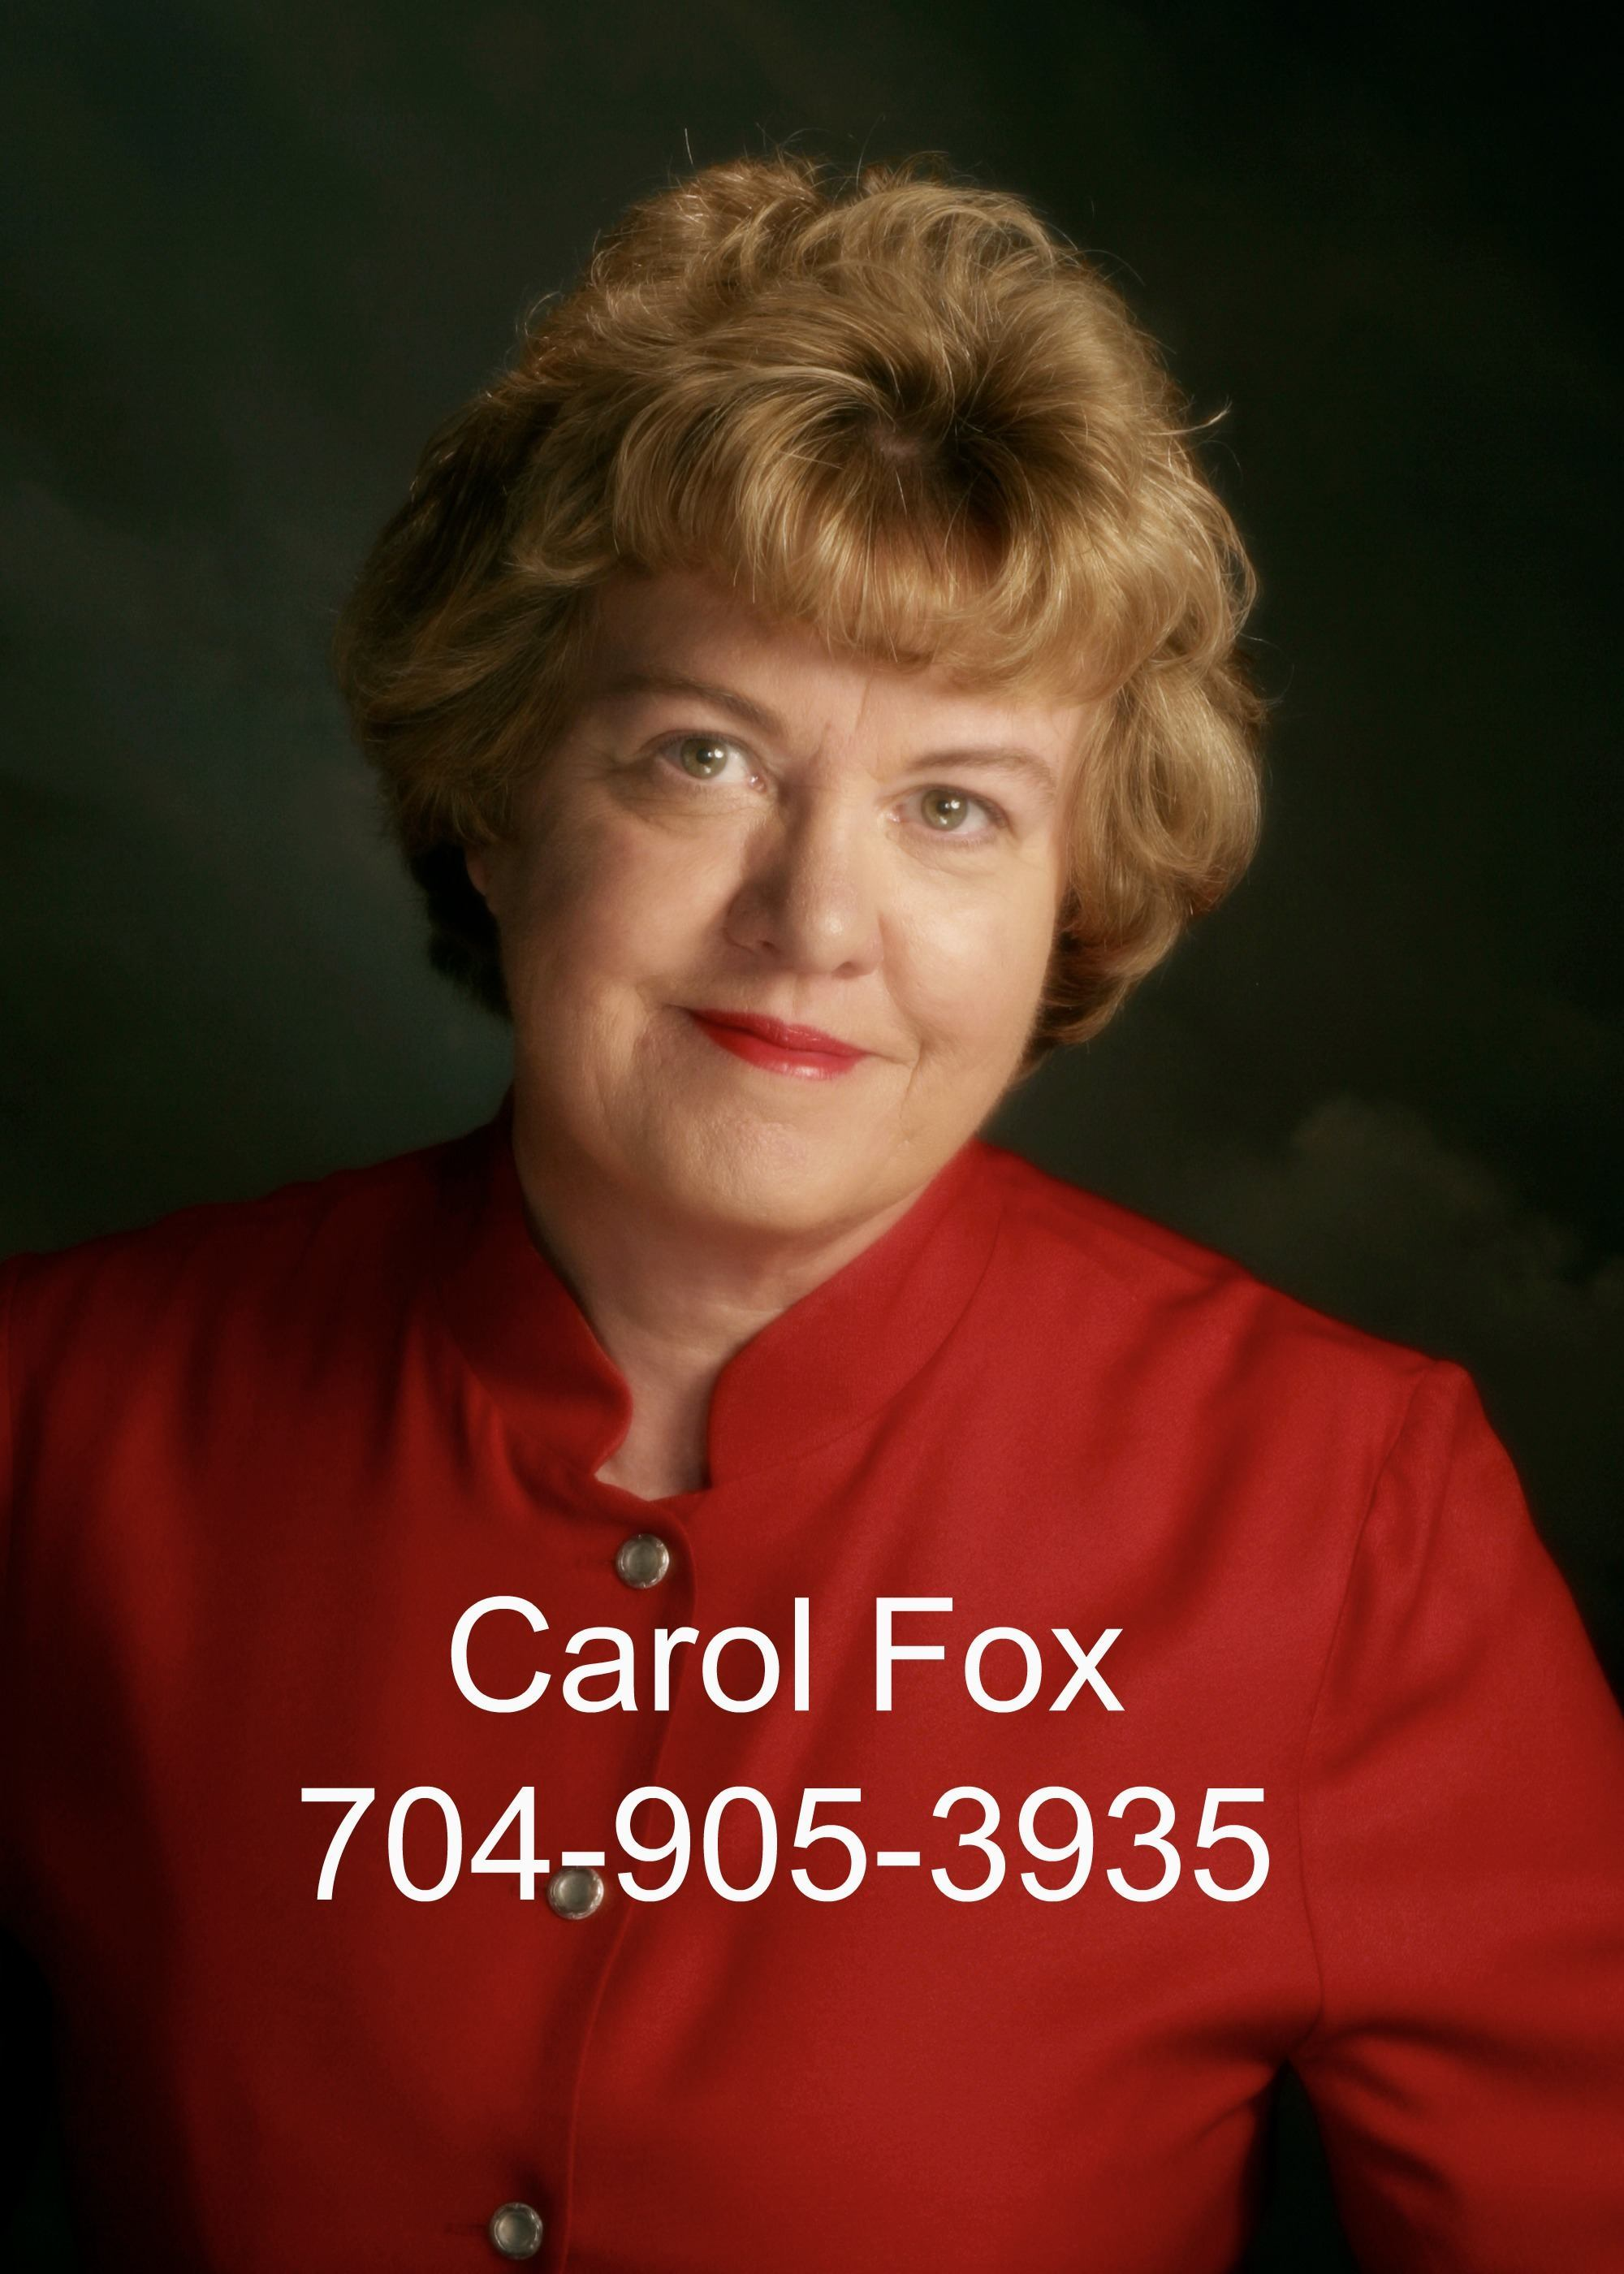 Carol Fox, Matthews NC Real Estate Agent